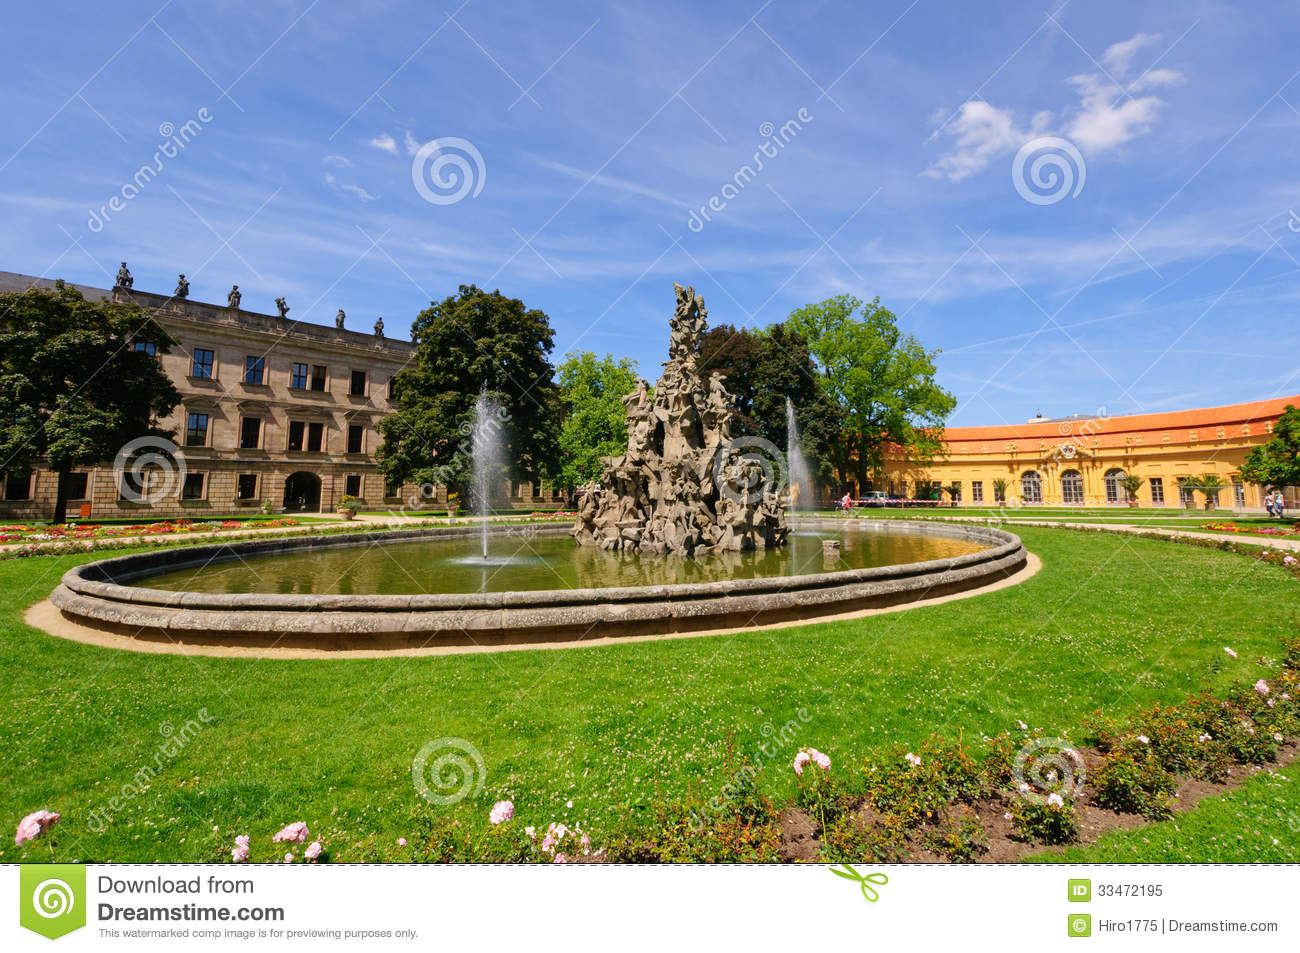 Erlangen Germany  city images : Schlossgarten In Summer In Erlangen, Germany Royalty Free Stock Photo ...